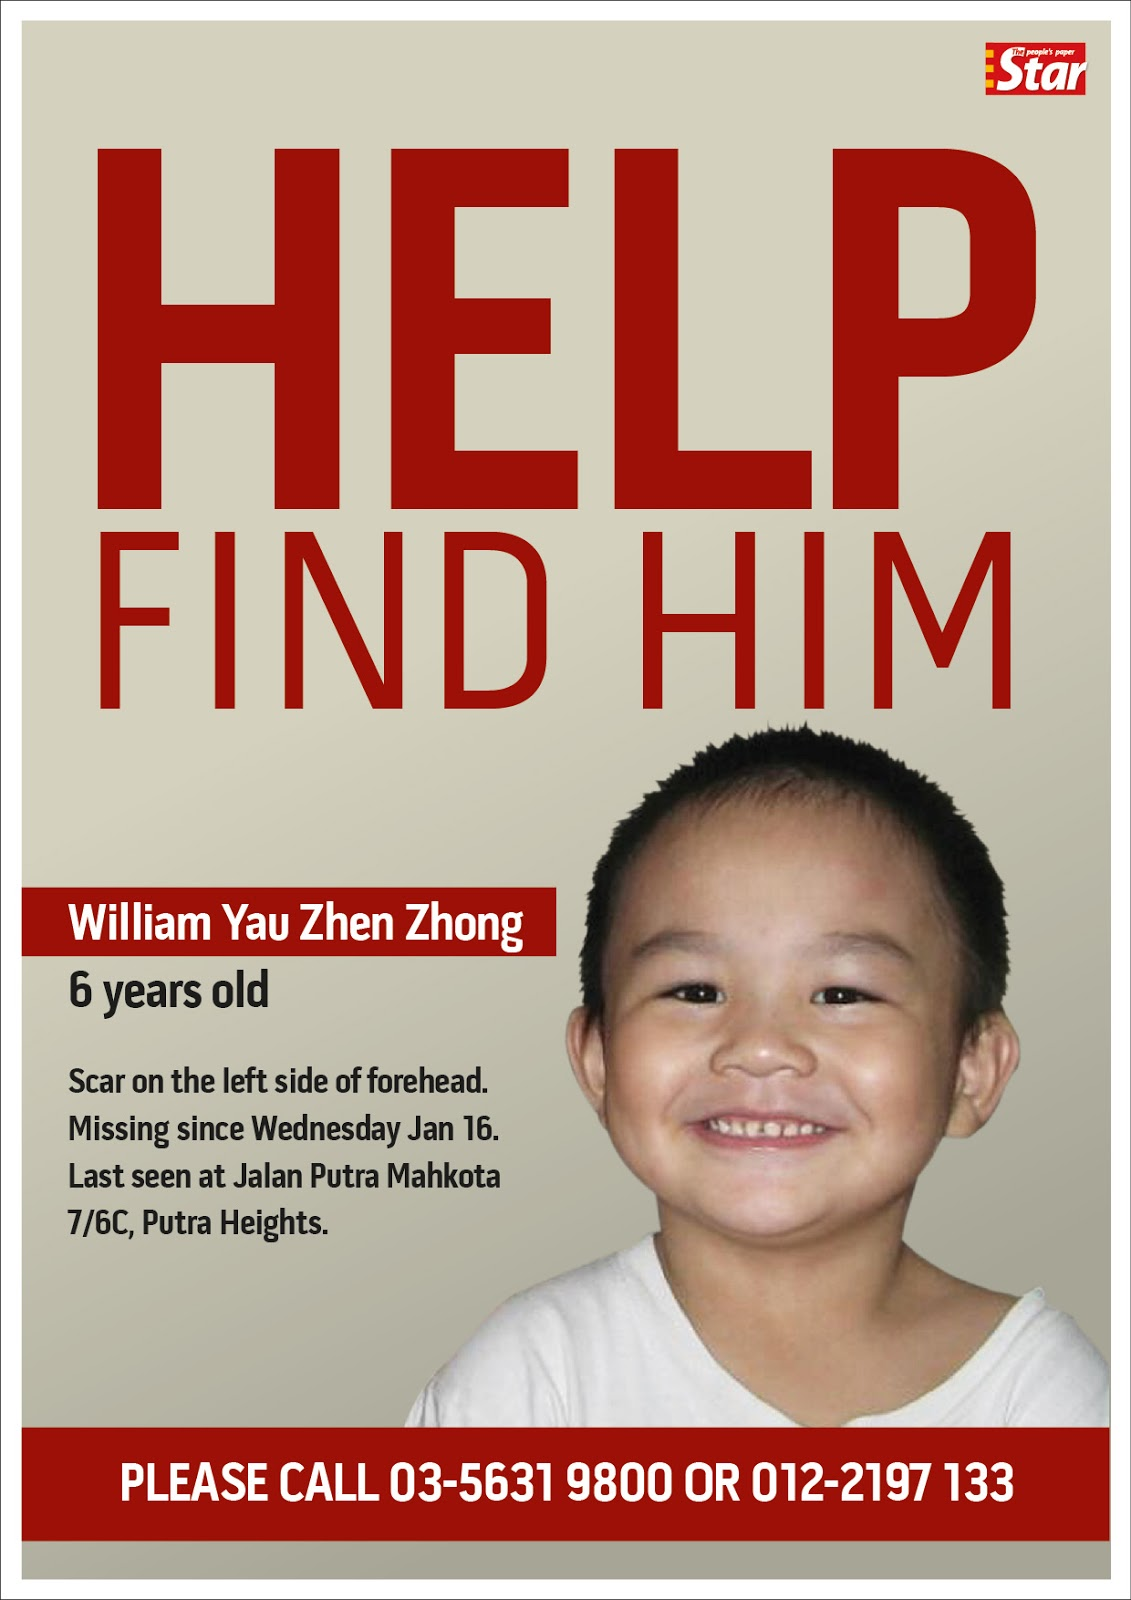 Tuesday, January 22, 2013  Make A Missing Person Poster